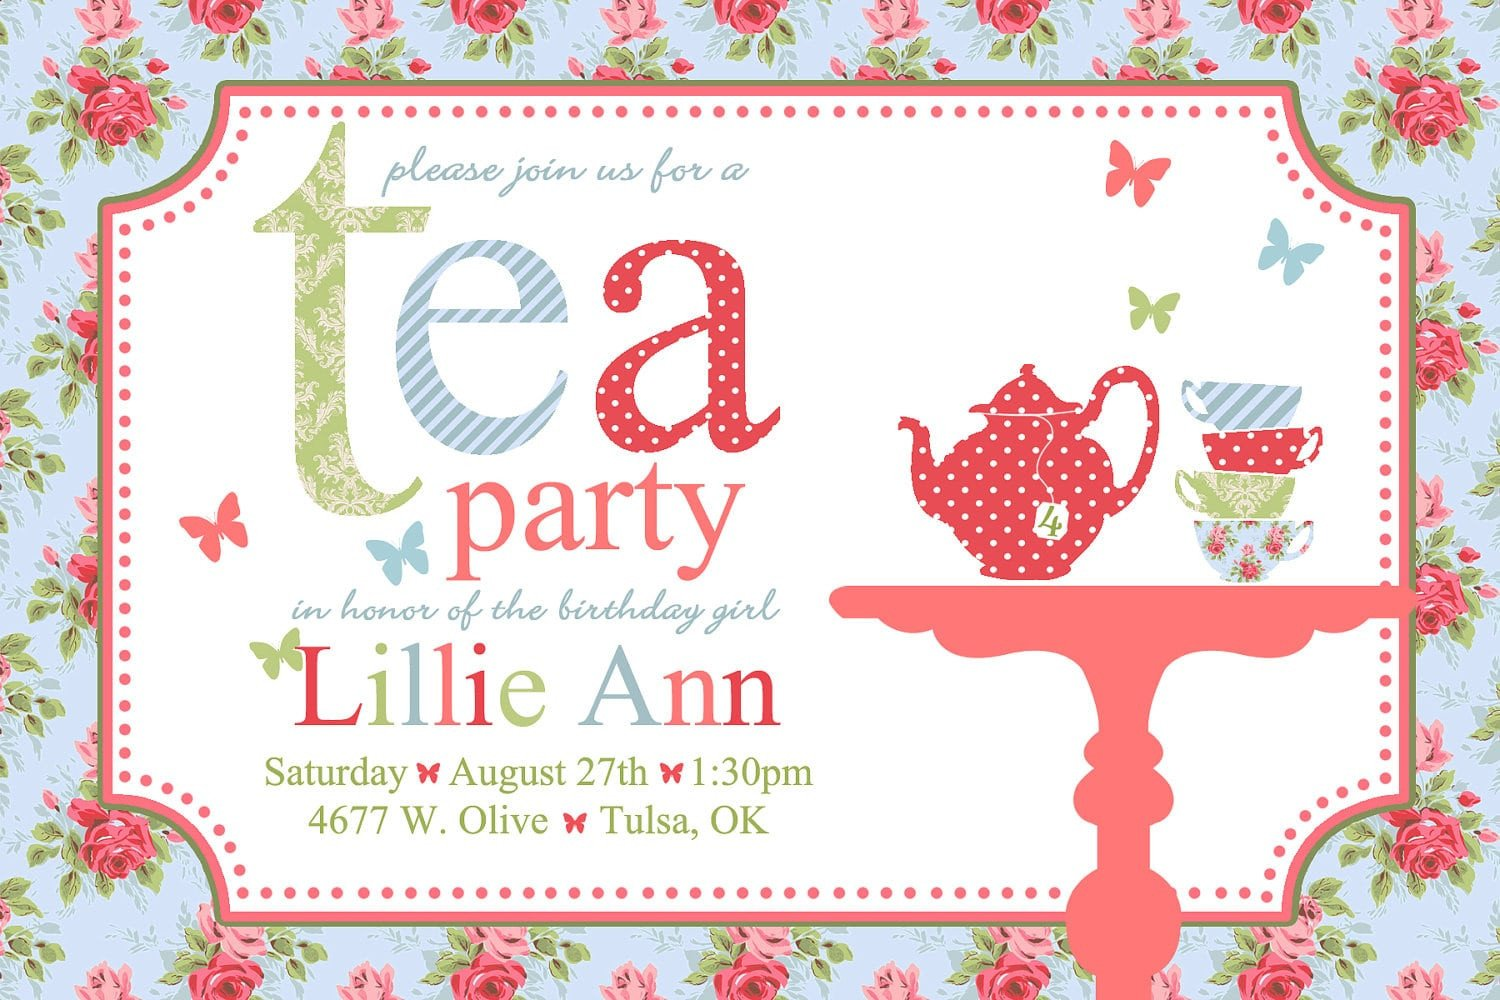 Tea Party Invitation Template Free afternoon Tea Invitation Template